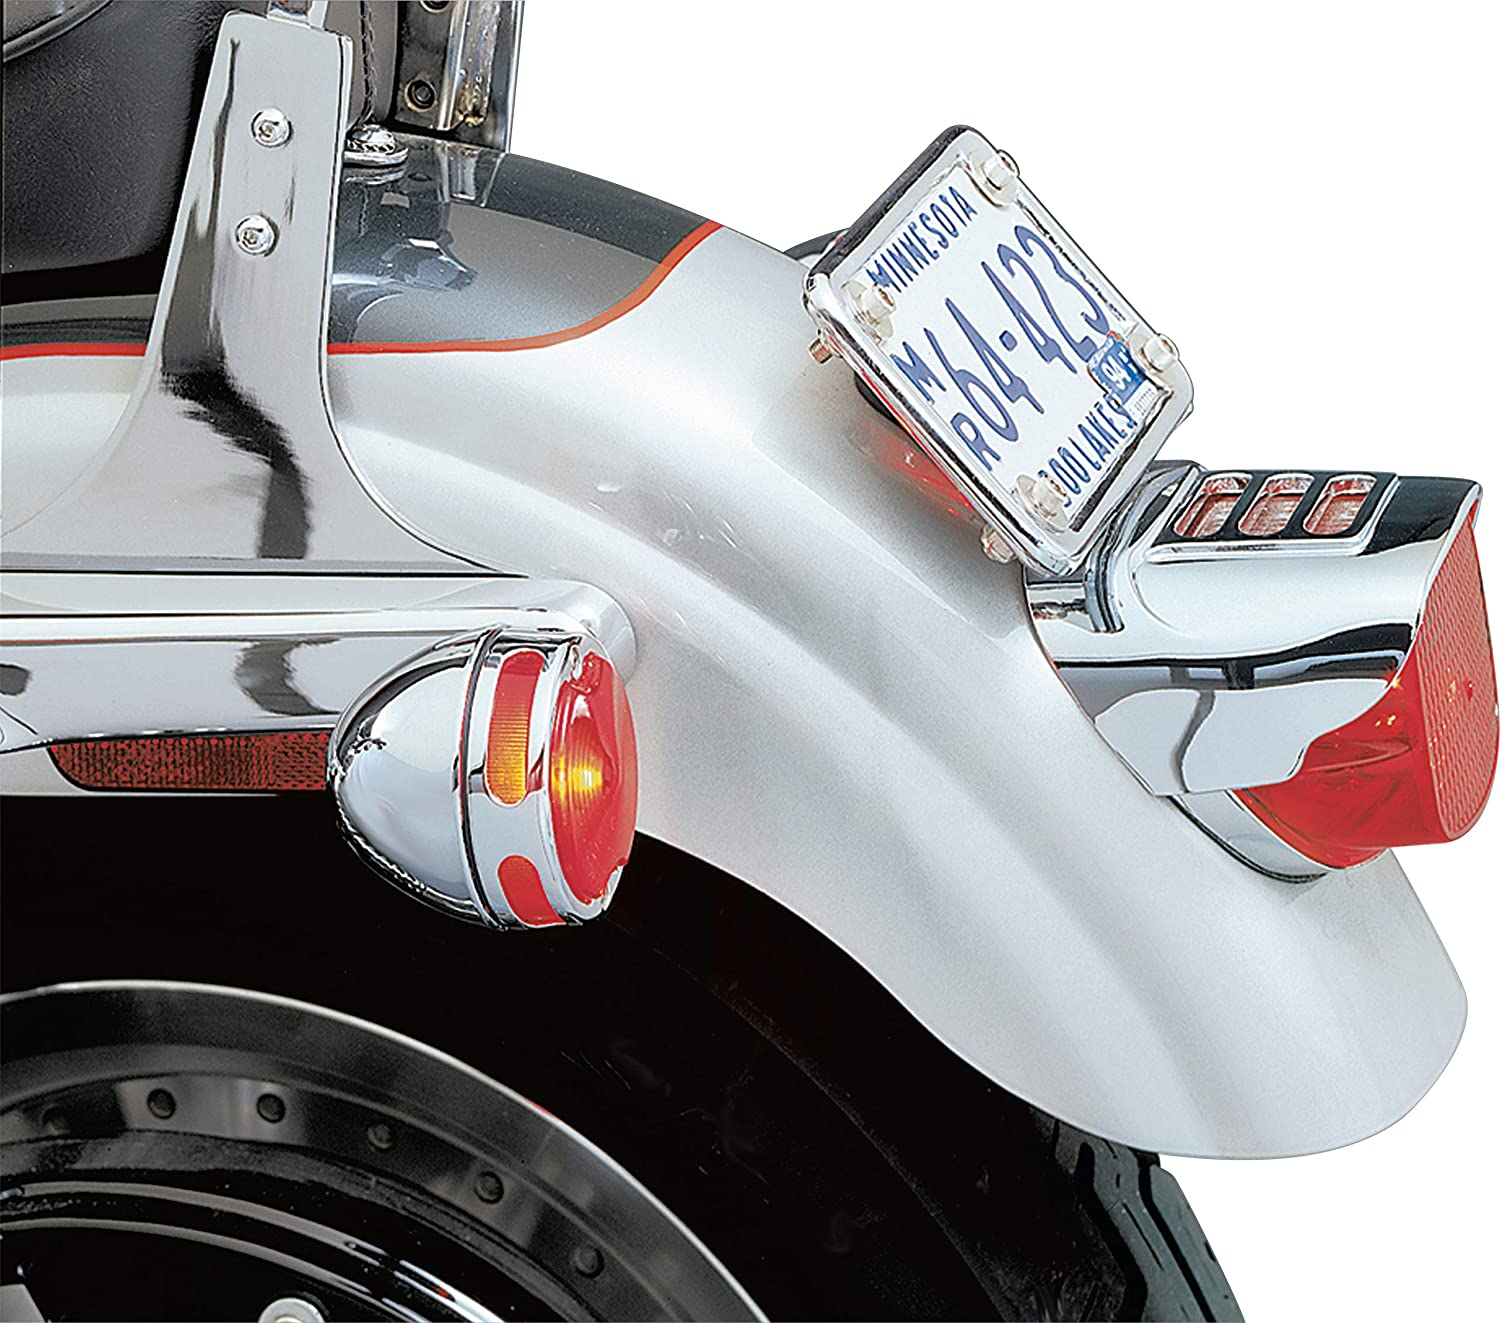 Slotted Taillight Cover for 1973-2019 Harley-Davidson Motorcycles Chrome Kuryakyn 8130 Motorcycle Accent Accessory